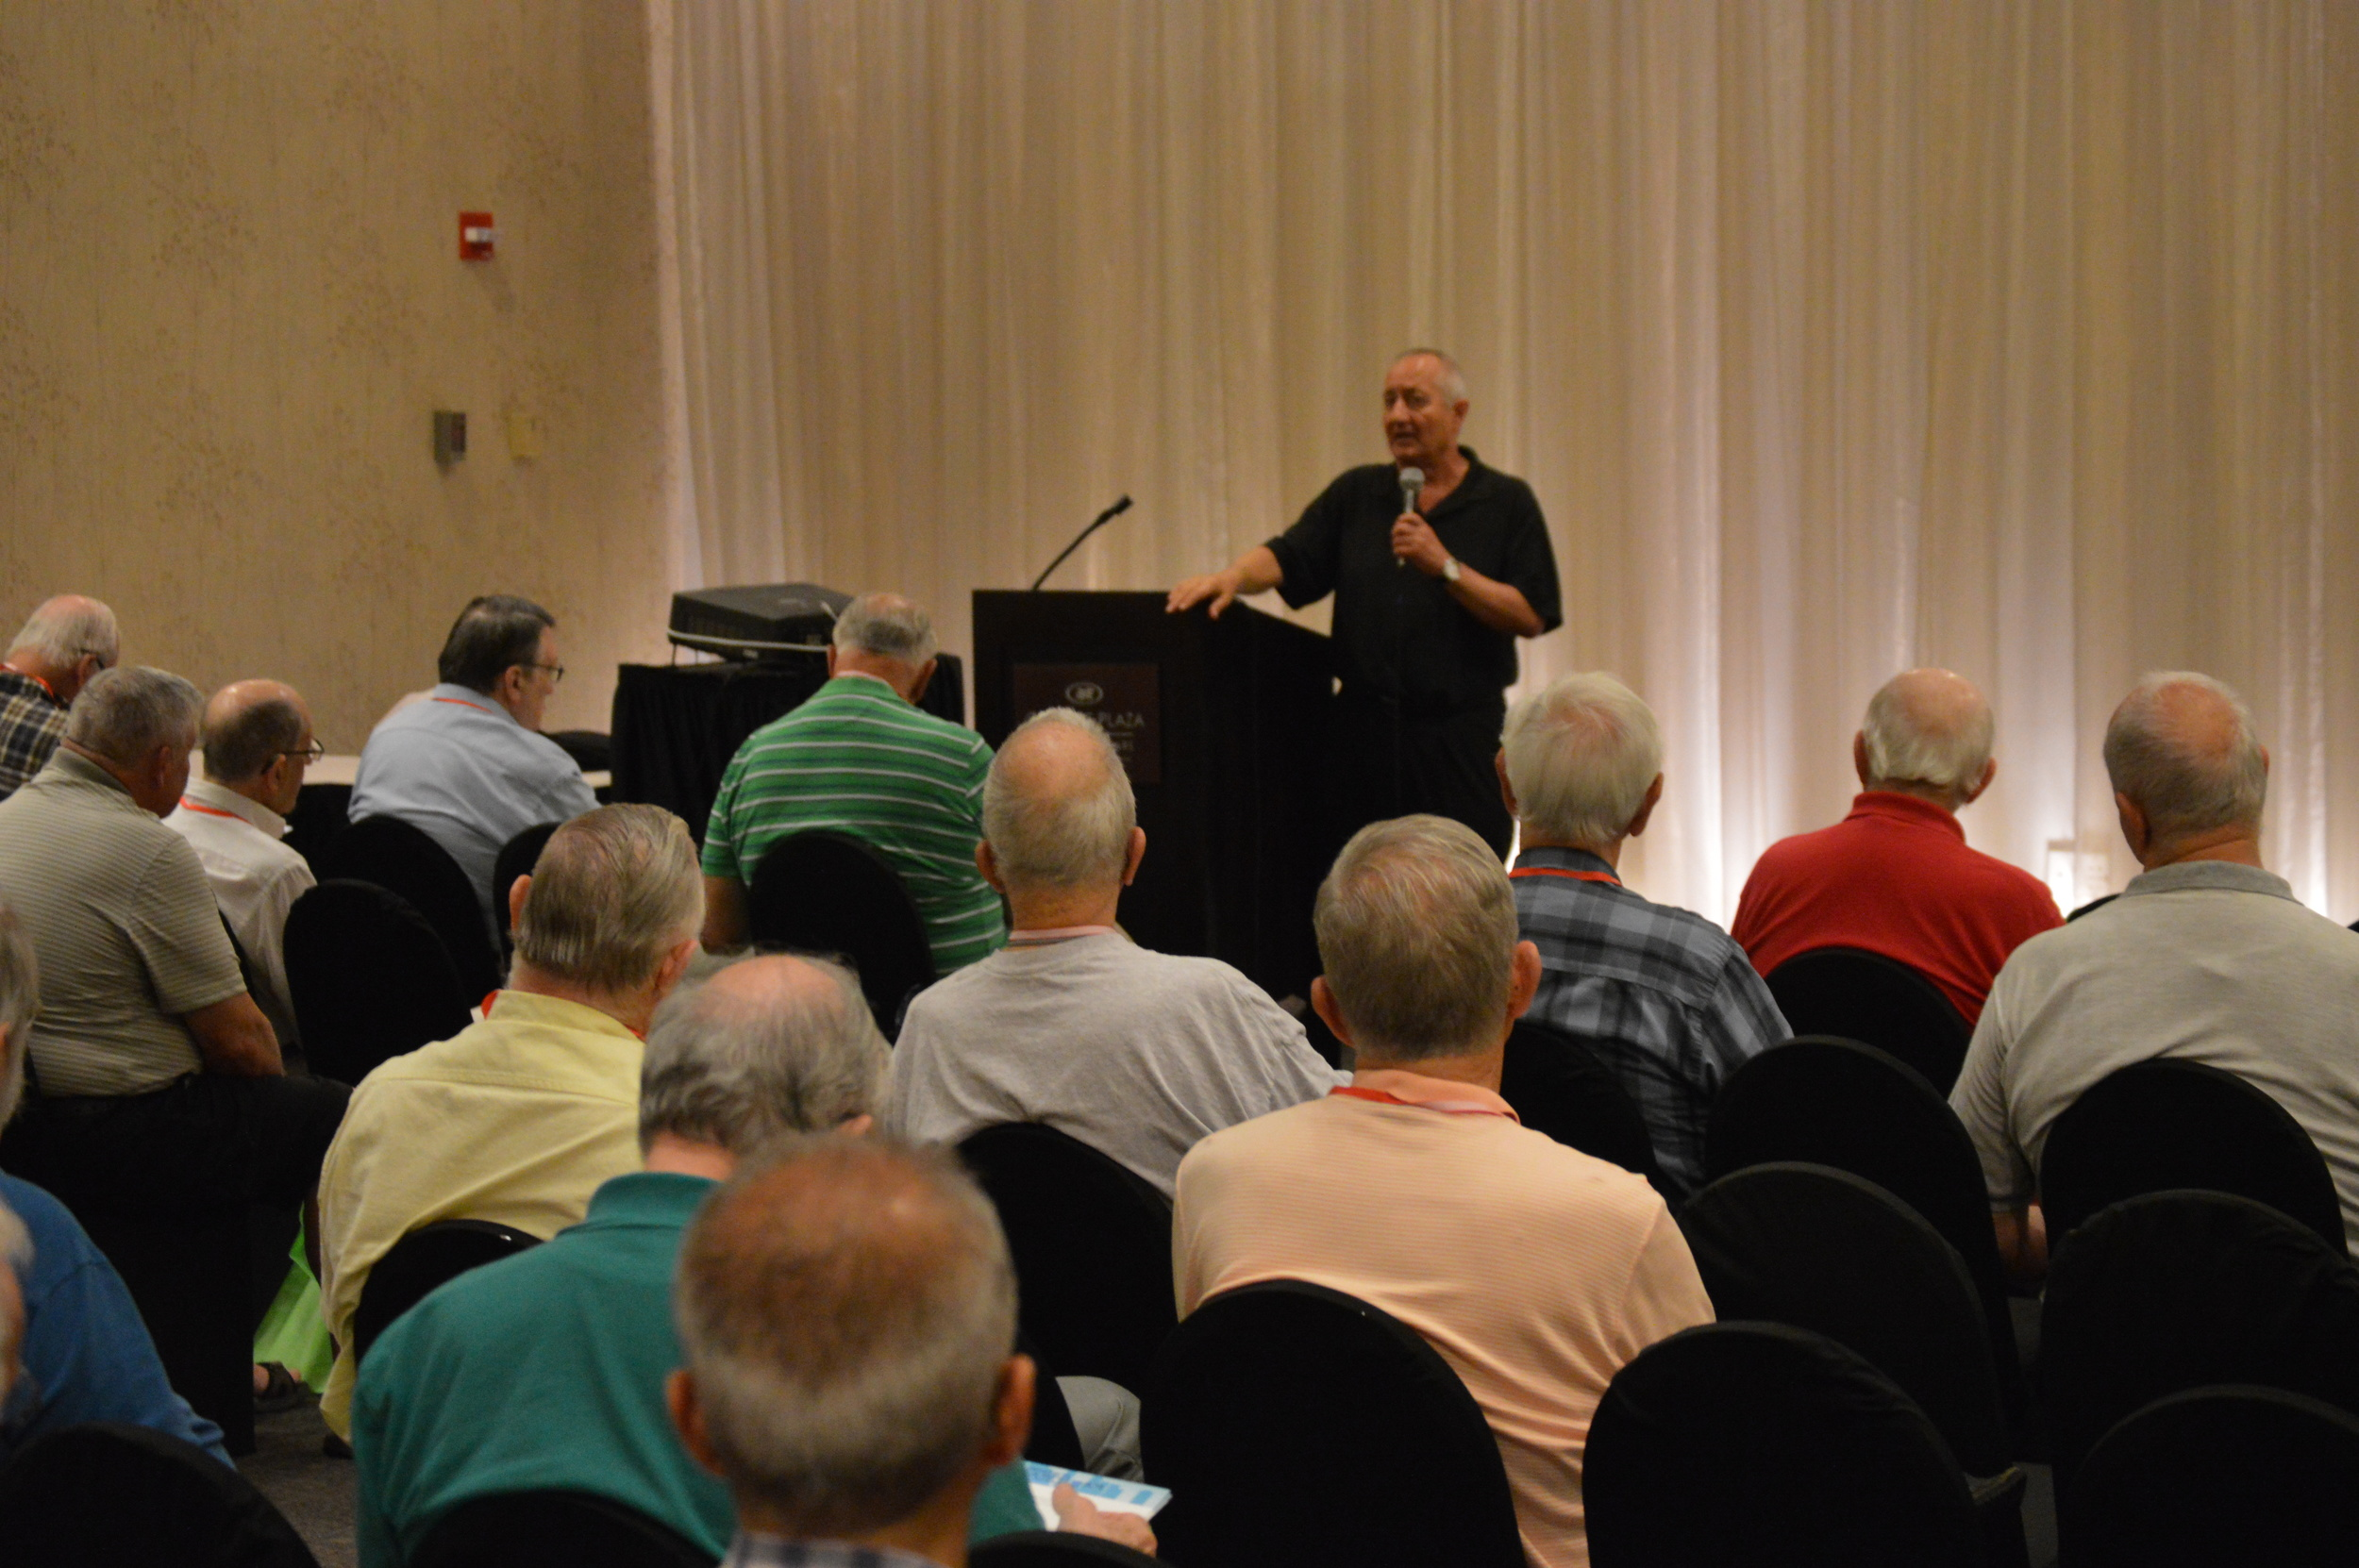 Father Lou Cameli leads retreat in the Balmoral Room June 27